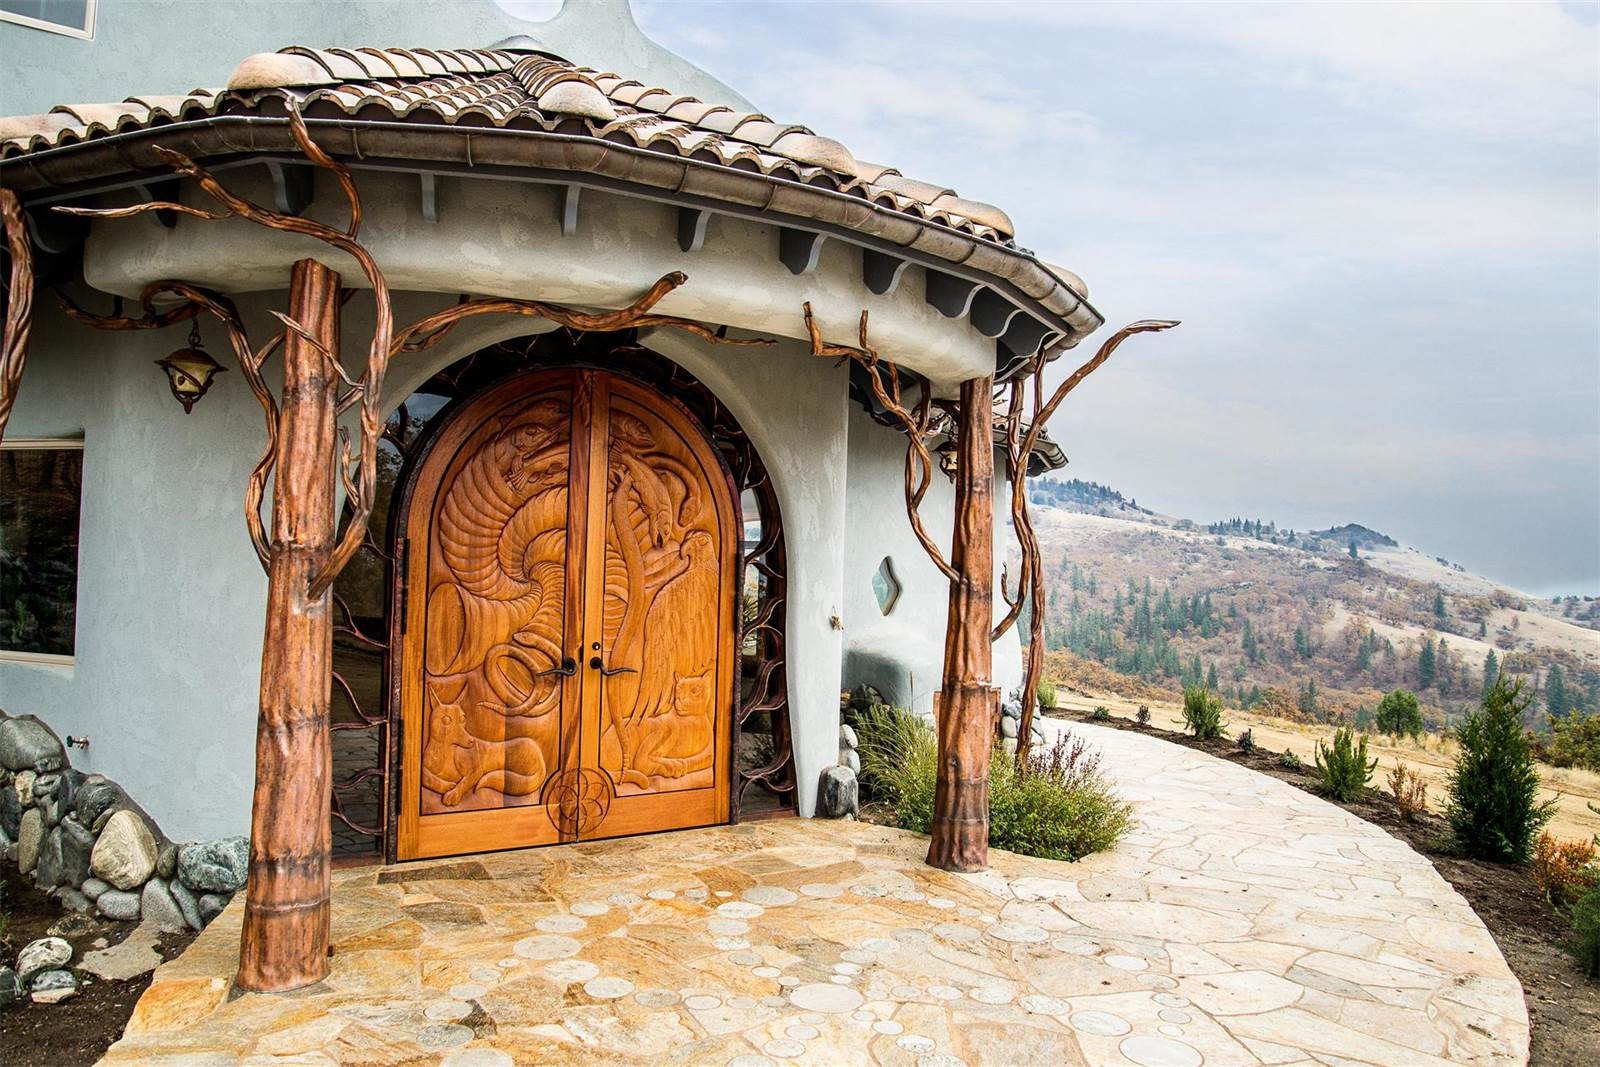 Built to honor and reflect the beauty of the surrounding landscape, Shining Hand Ranch, an 8,880-square-foot eco home on 700 private acres, is itself a work of art.